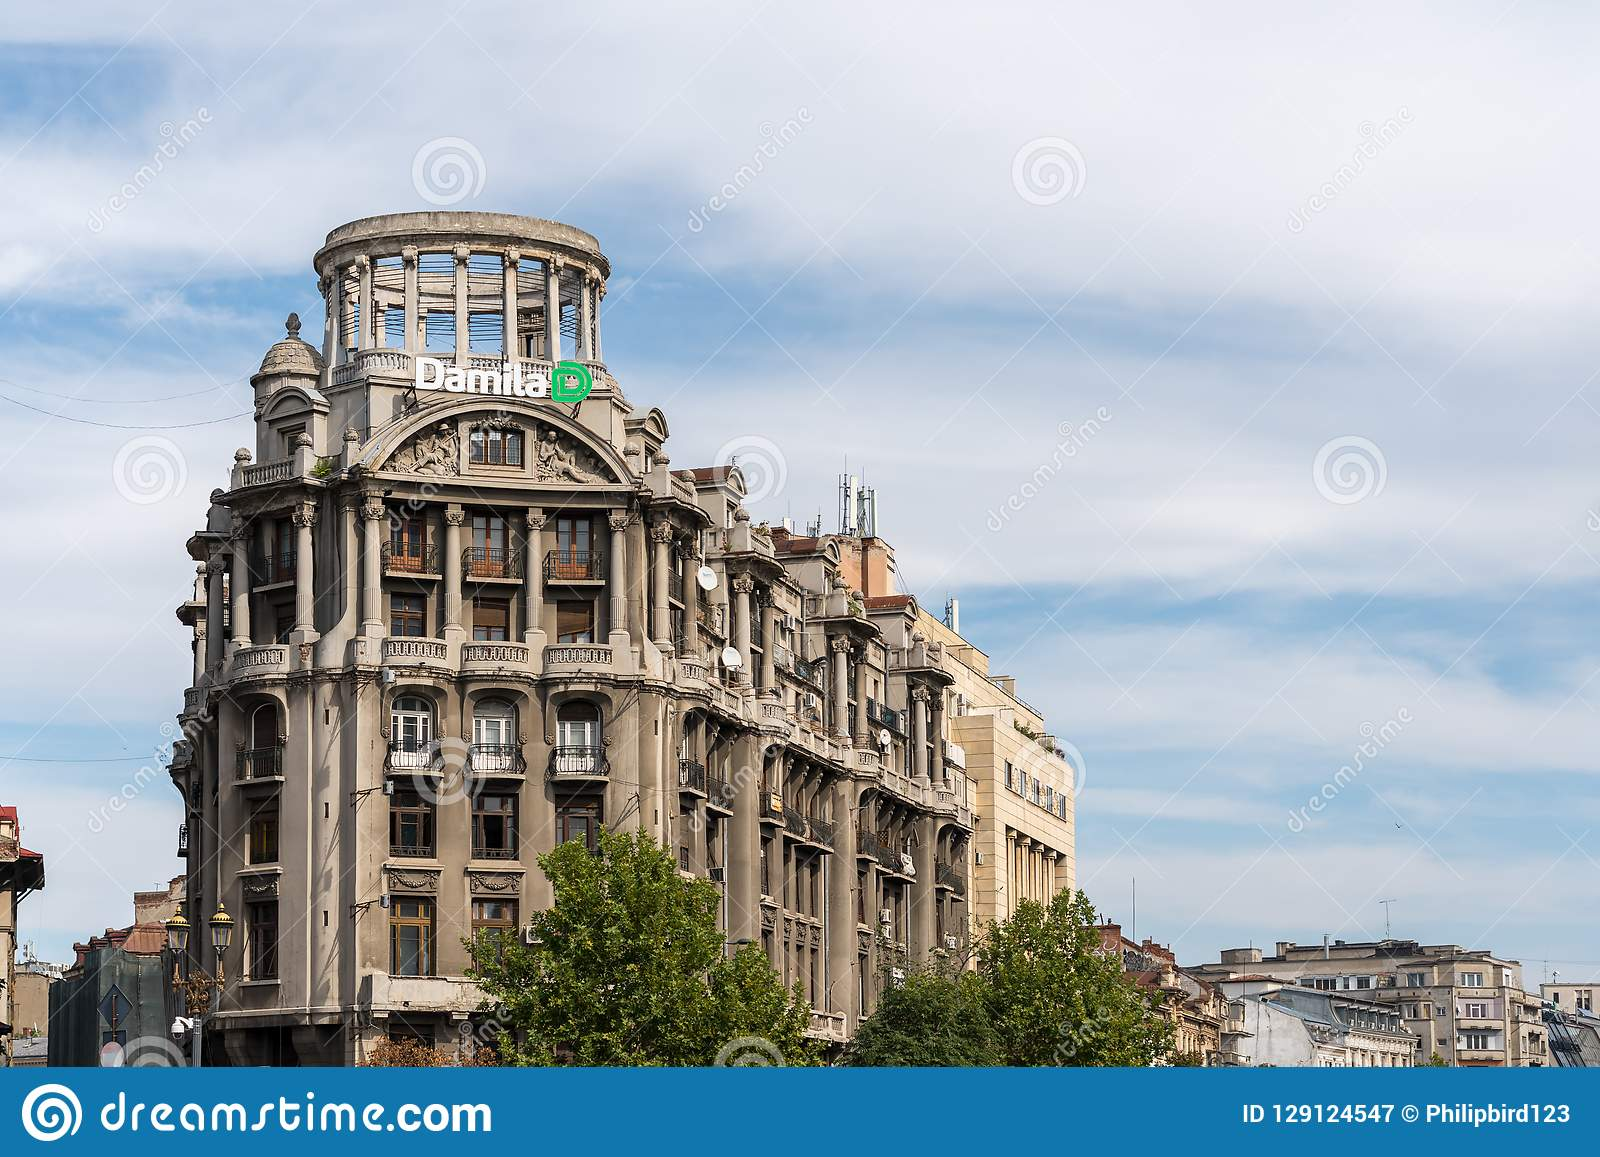 BUCHAREST/ROMANIA - SEPTEMBER 21 : View of old apartments in Bucharest Romania on September 21, 2018